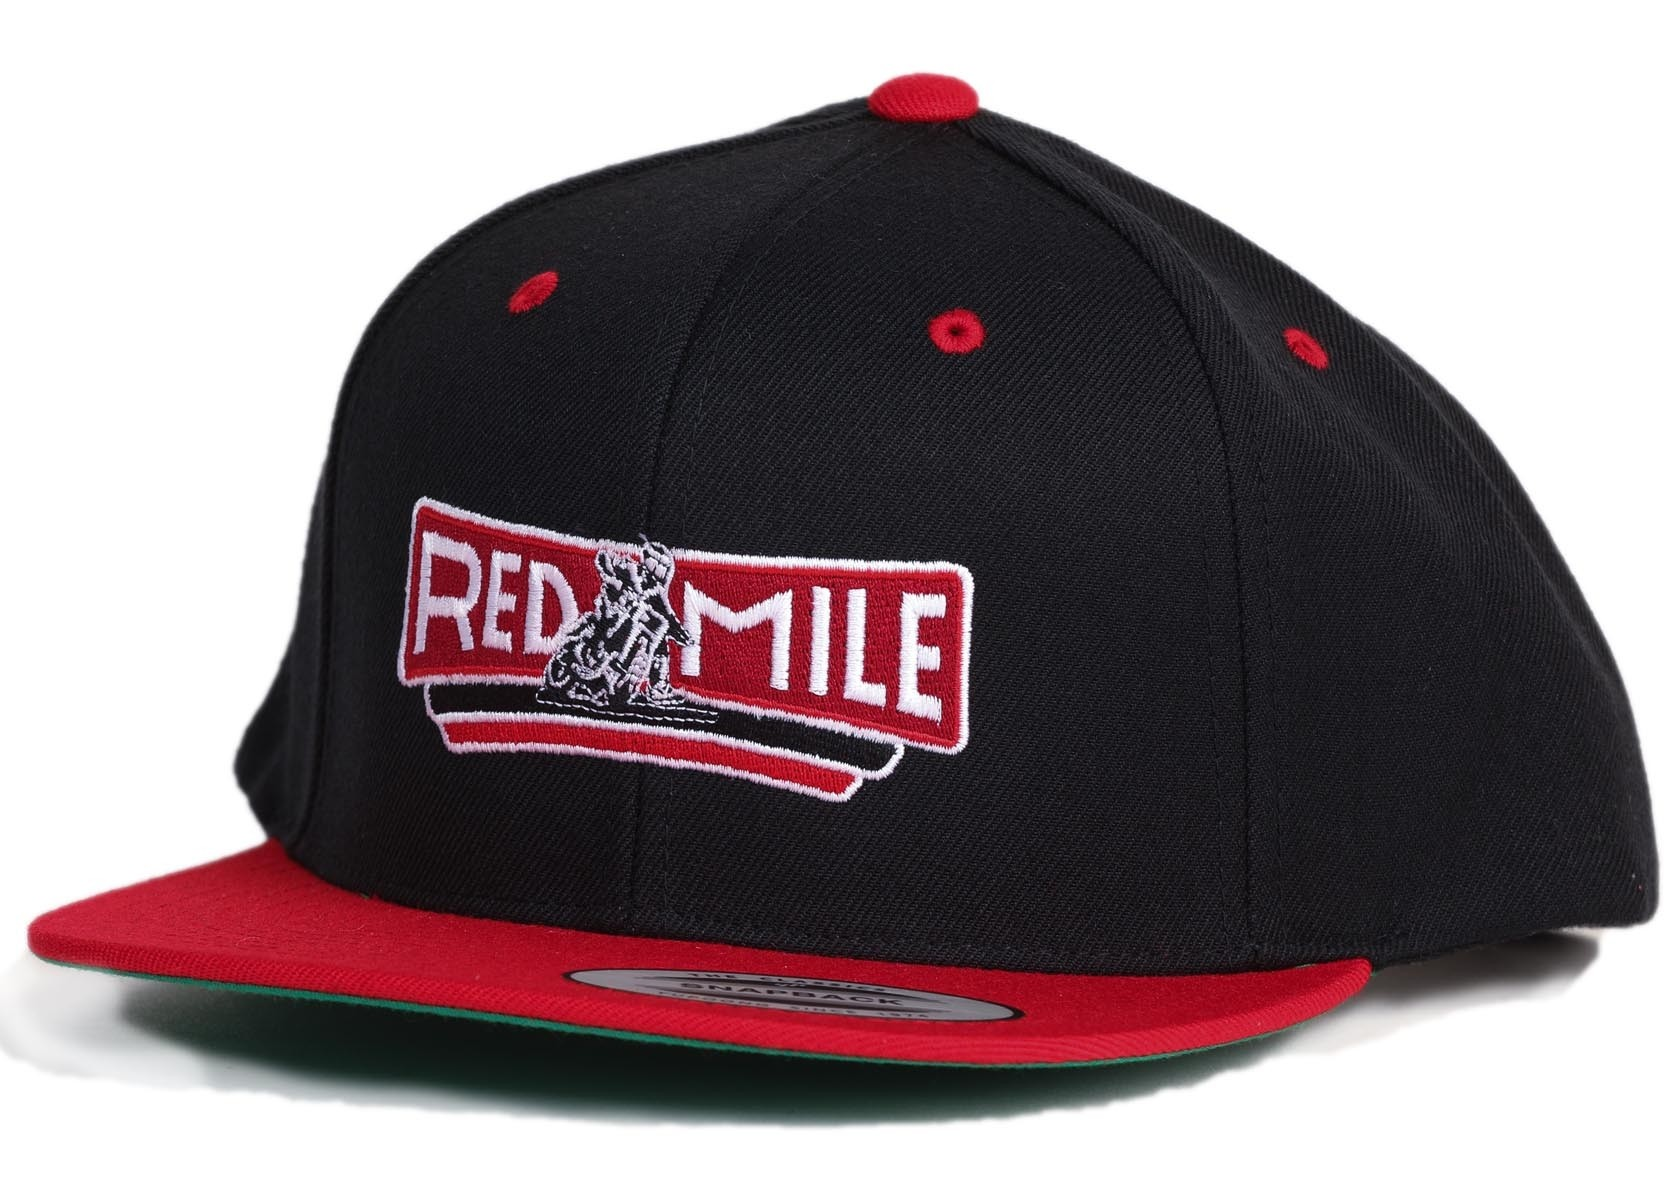 2019 Red Mile Event Hat